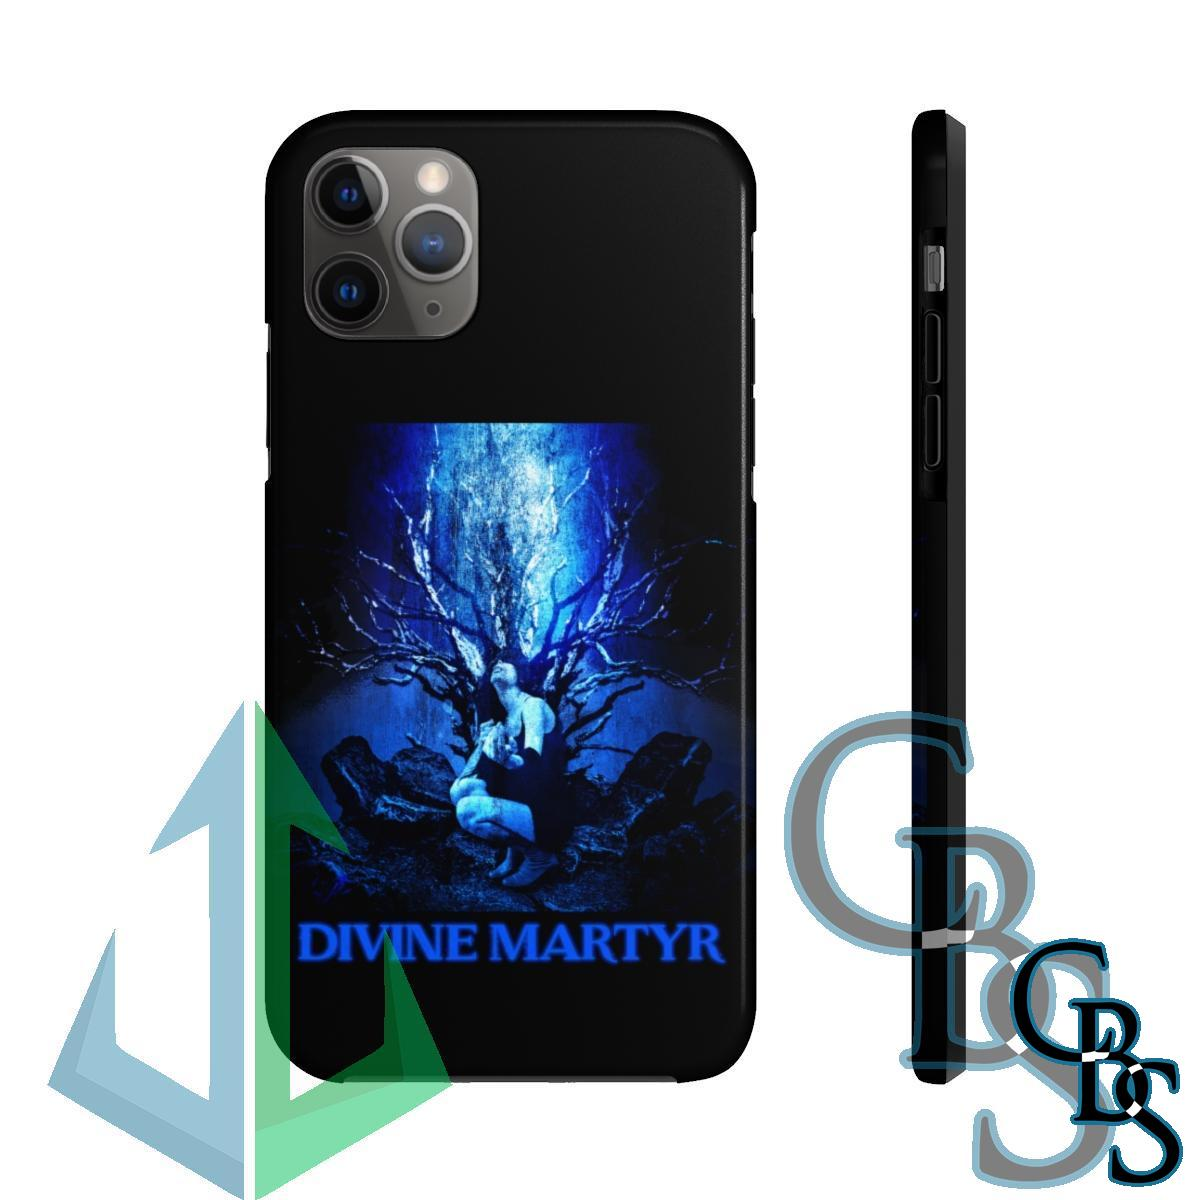 Divine Martyr – More Than What You Are (Version 2) Tough iPhone Cases (iPhone 7/7 Plus, iPhone 8/8 Plus, iPhone X, XS, XR, iPhone 11, 11 Pro, 11 Pro Max)